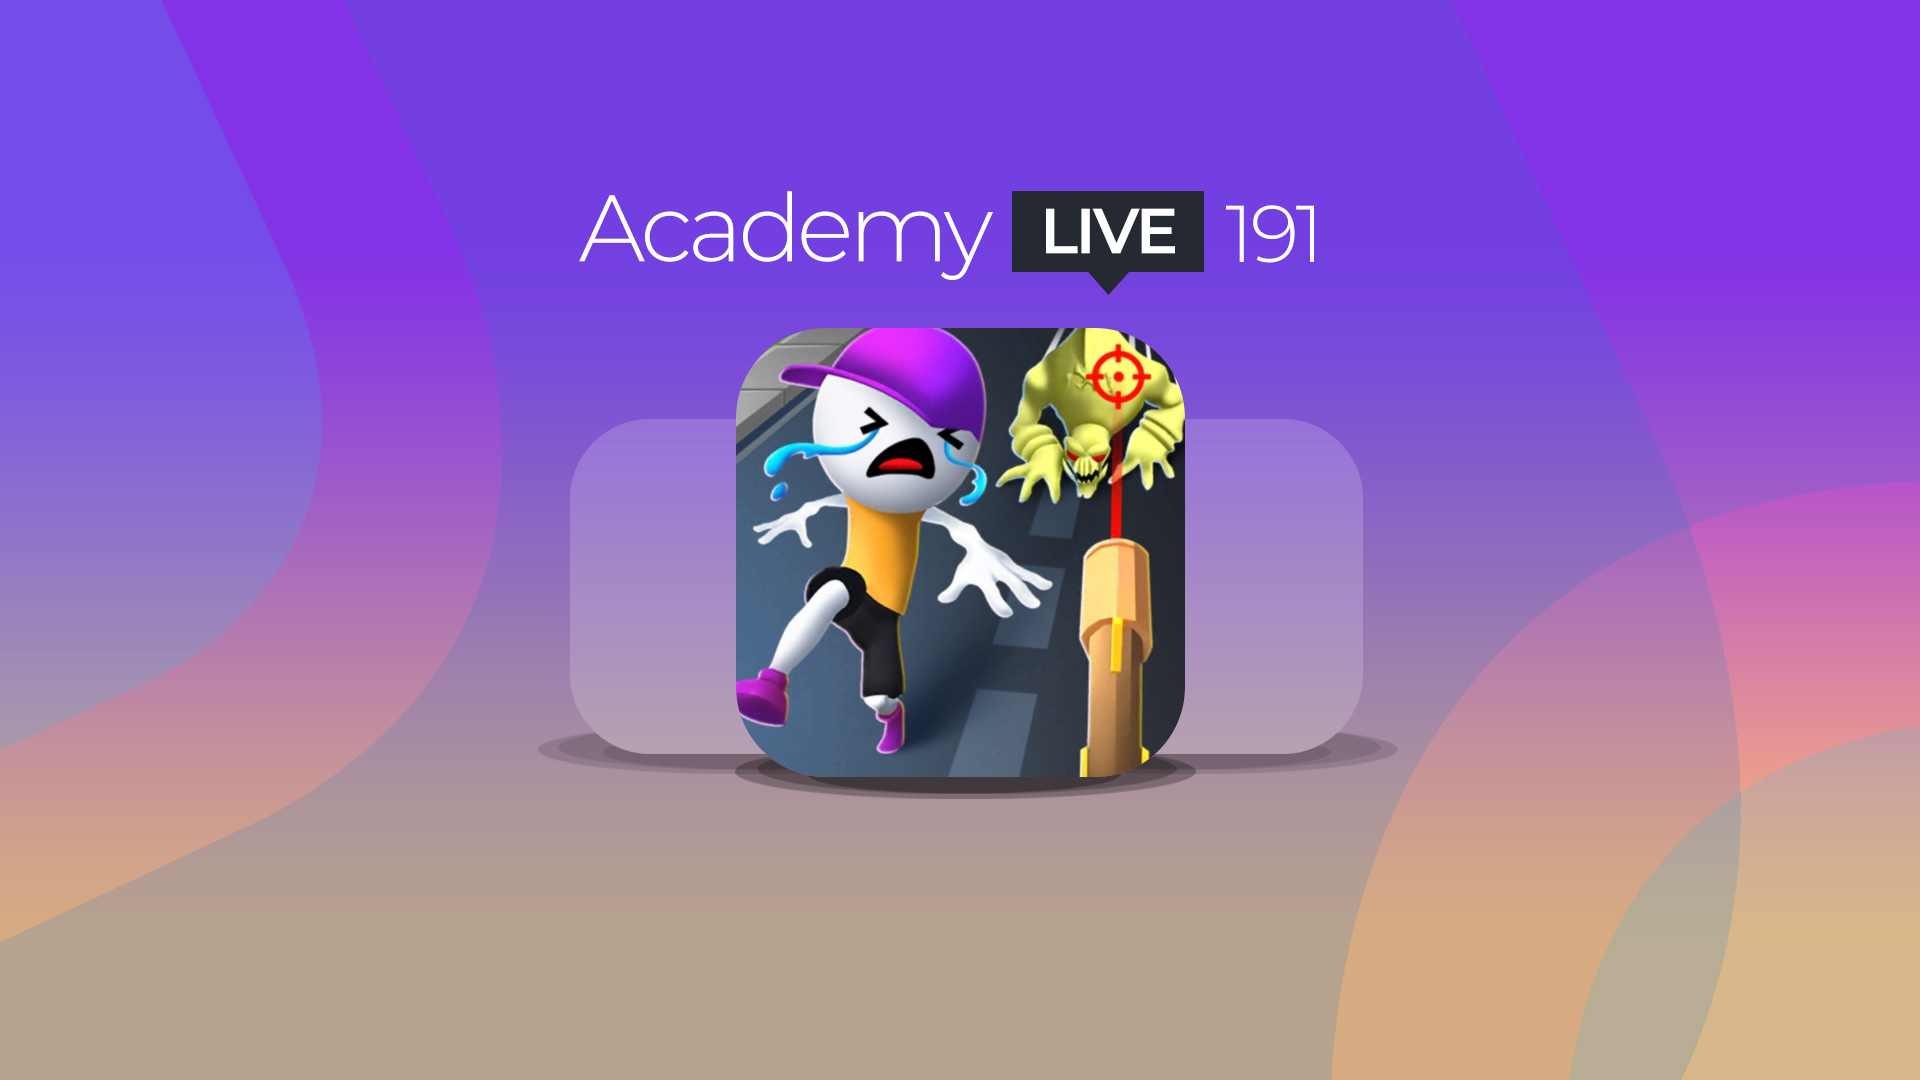 Academy Live 191: Ice Man 3D, Save The Town, Deliveryman